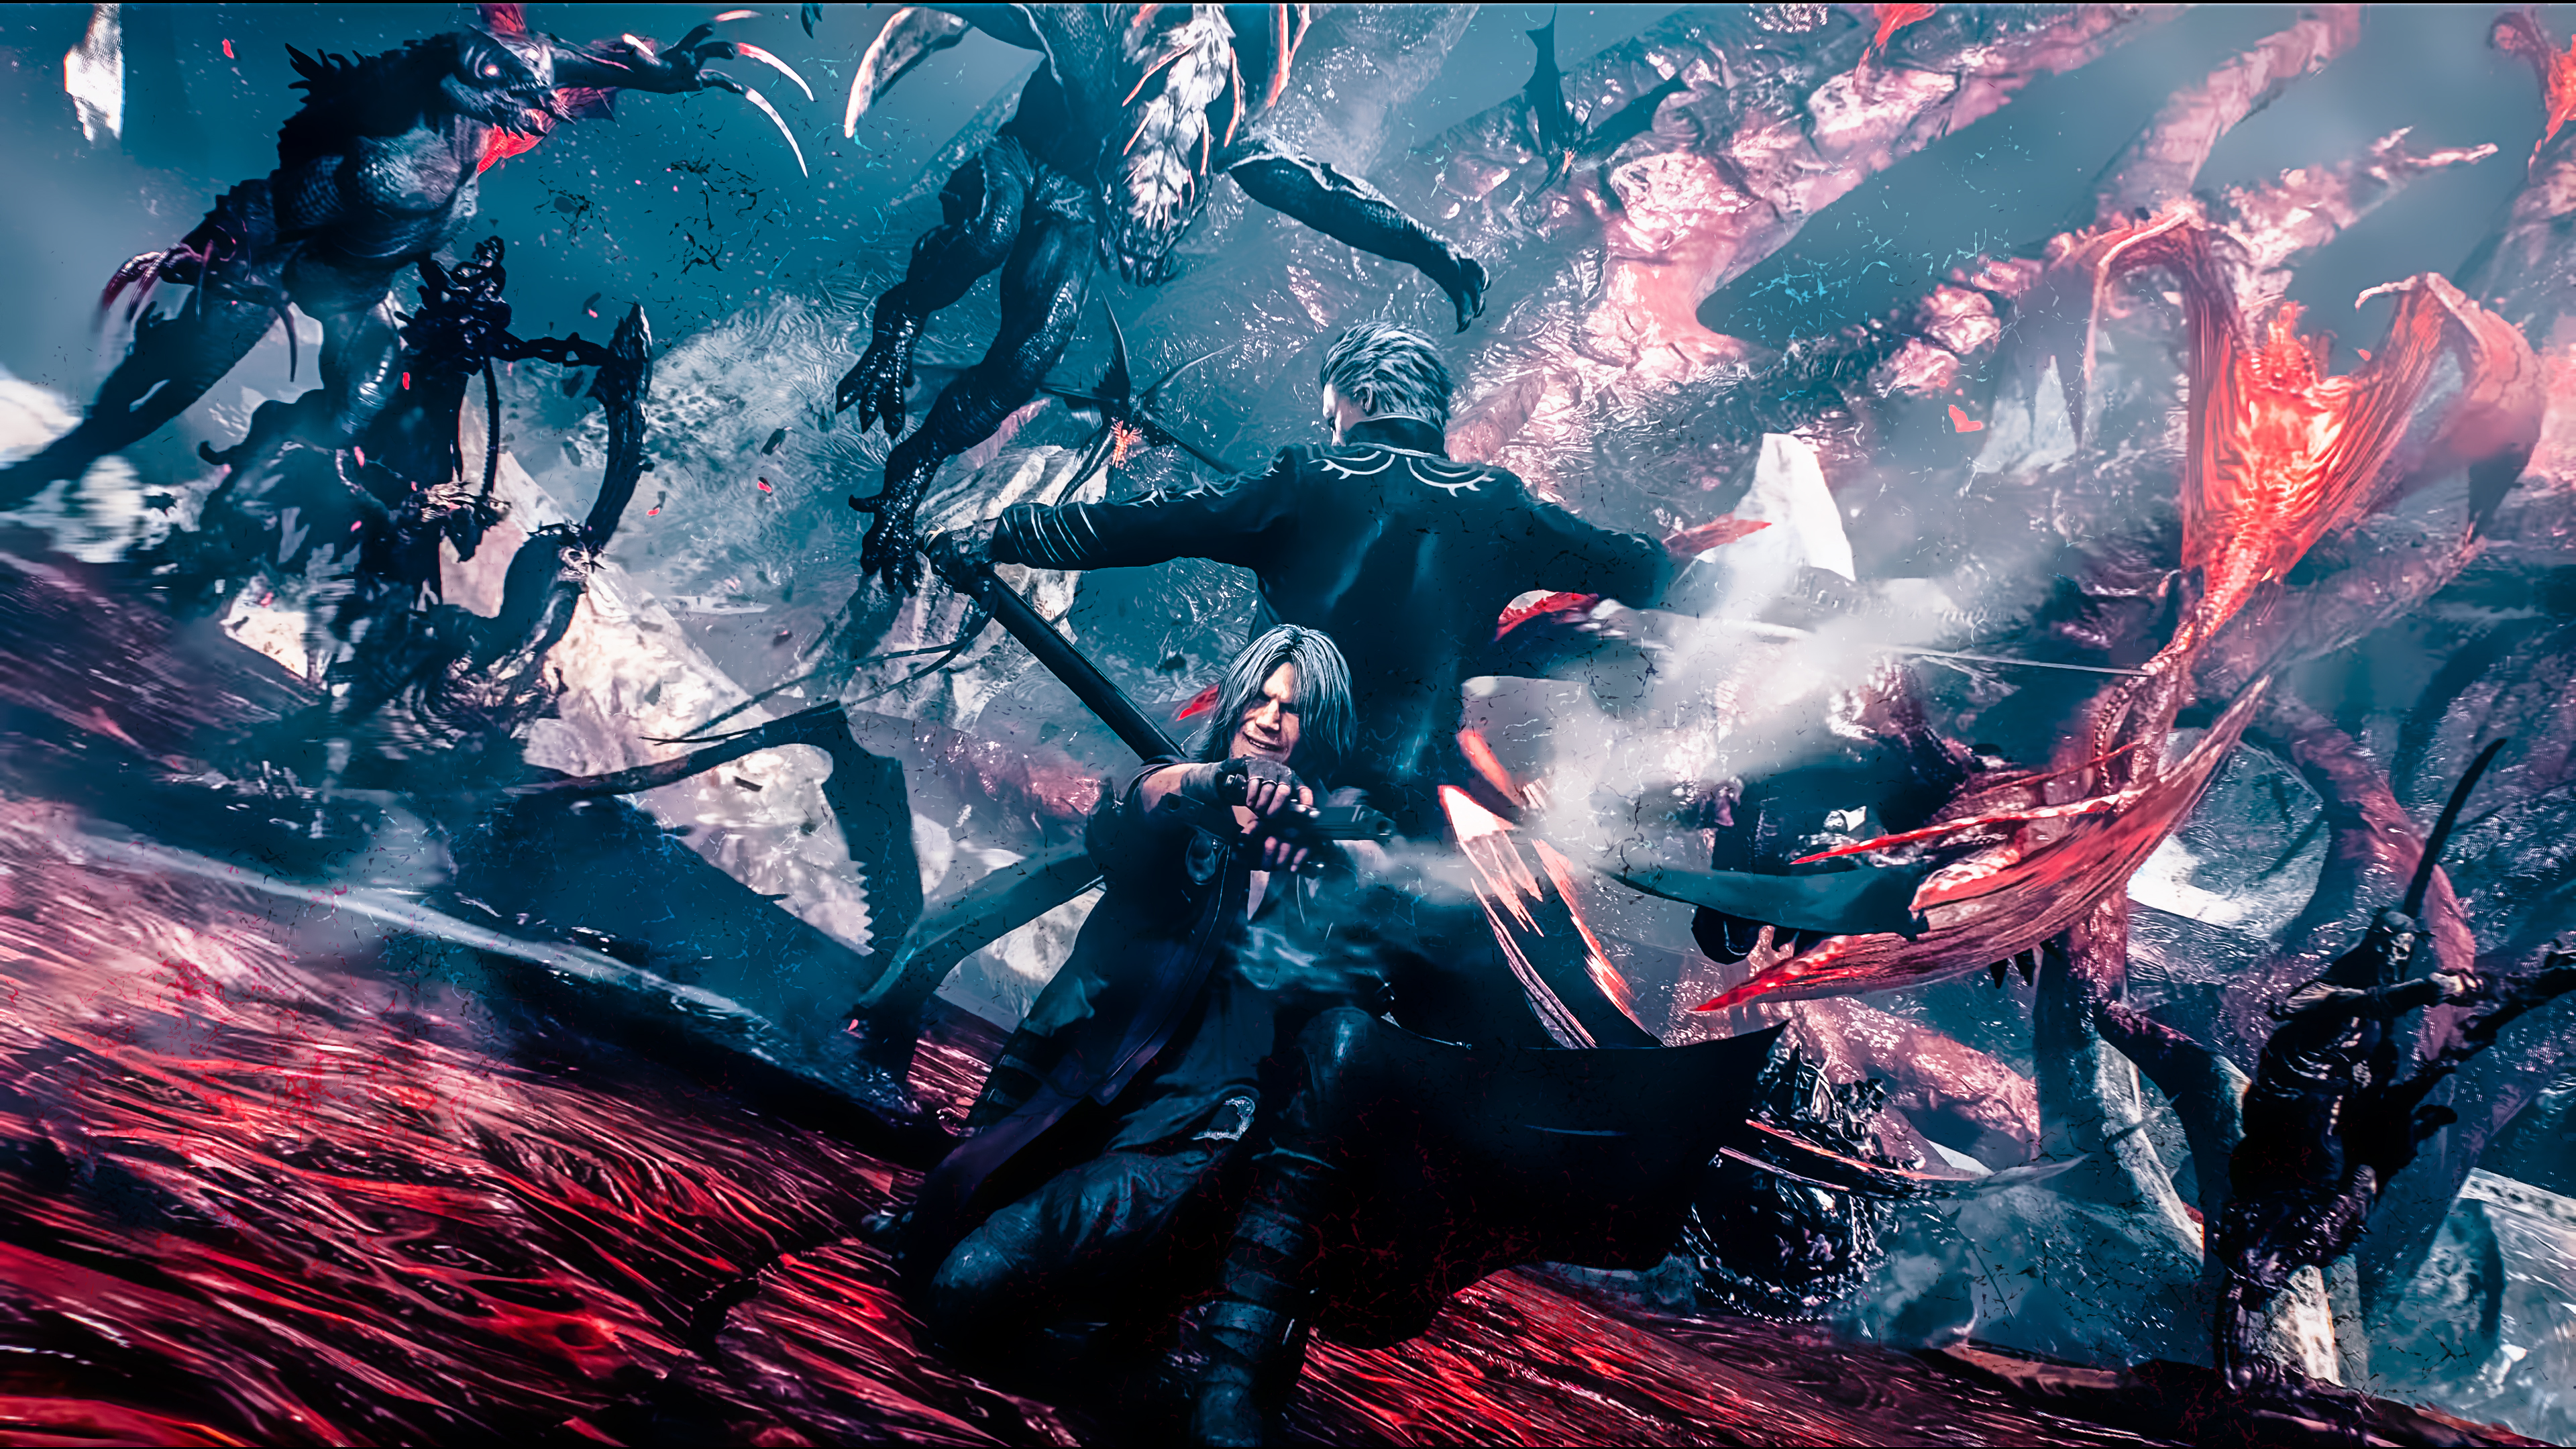 Devil May Cry 5 Dante And Vergil 4k Wallpaper Syanart Station